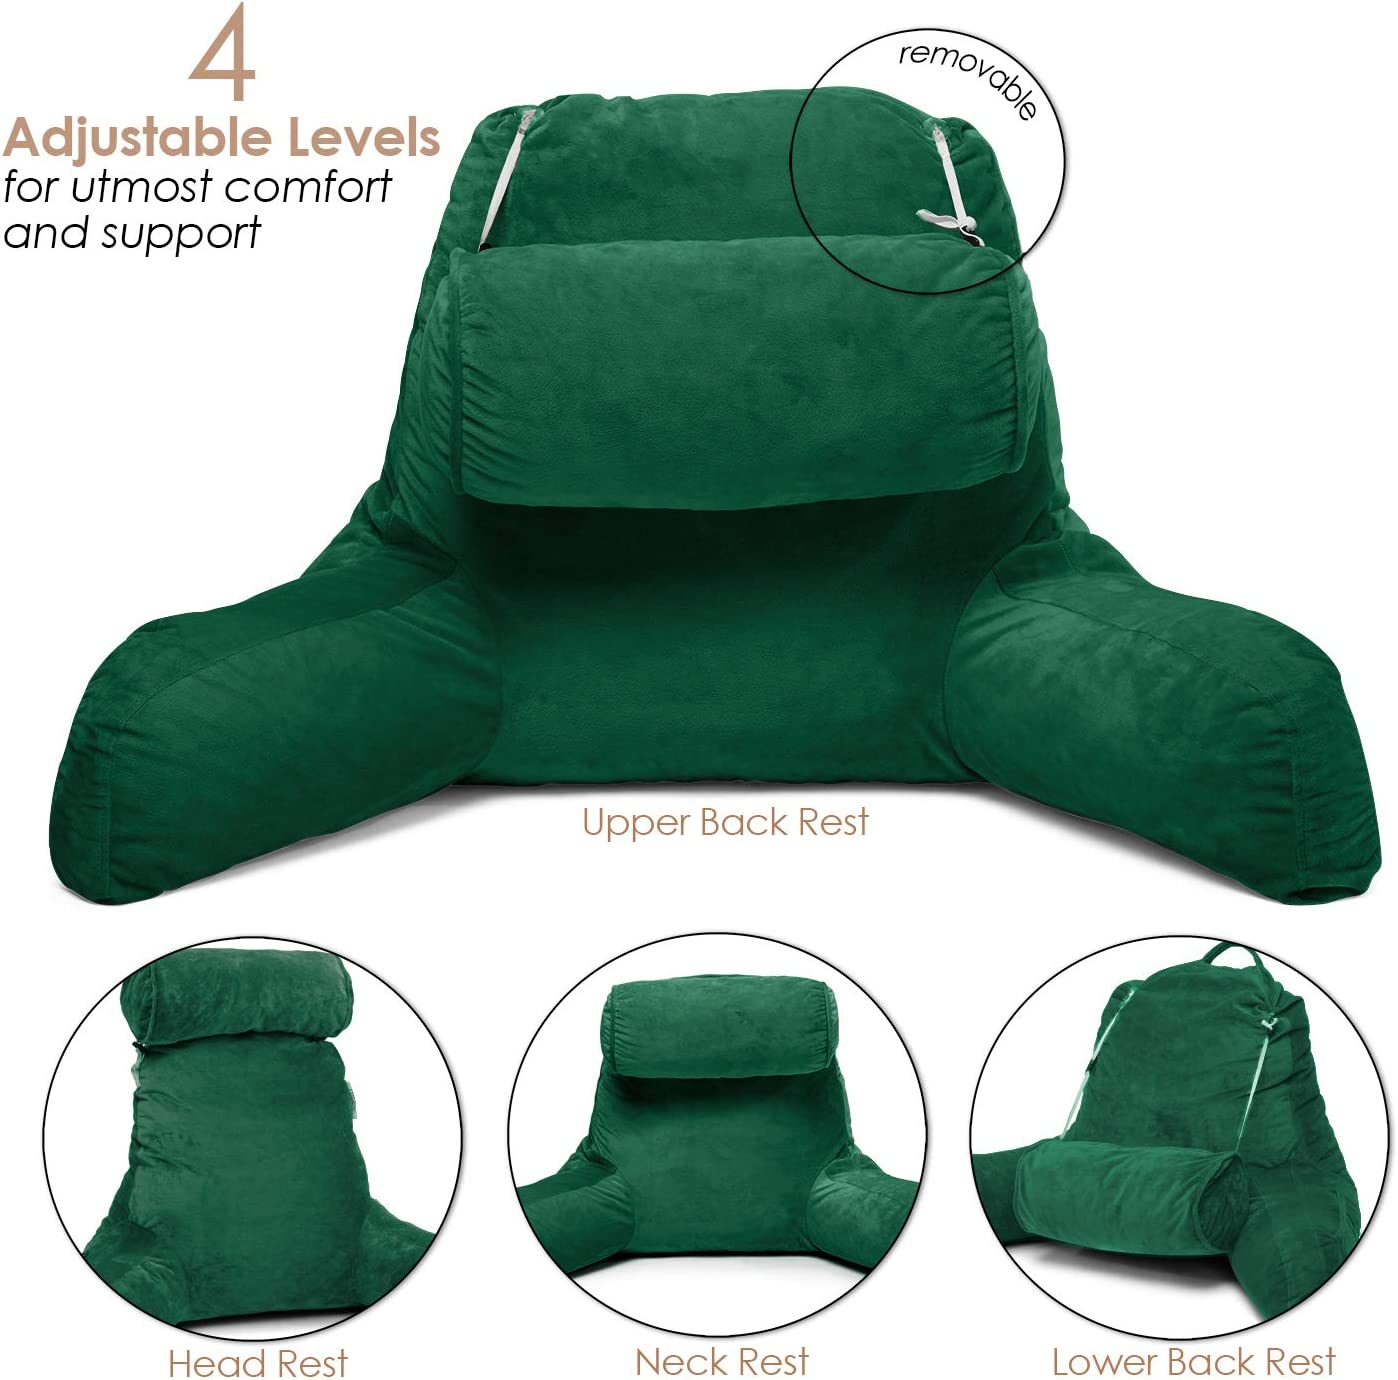 Clara Clark Bed Rest Reading Pillow with Arms and Pockets Premium Shredded Memory Foam, Detachable Neck Roll & Lumbar Support, Large, Hunter Green: Home & Kitchen